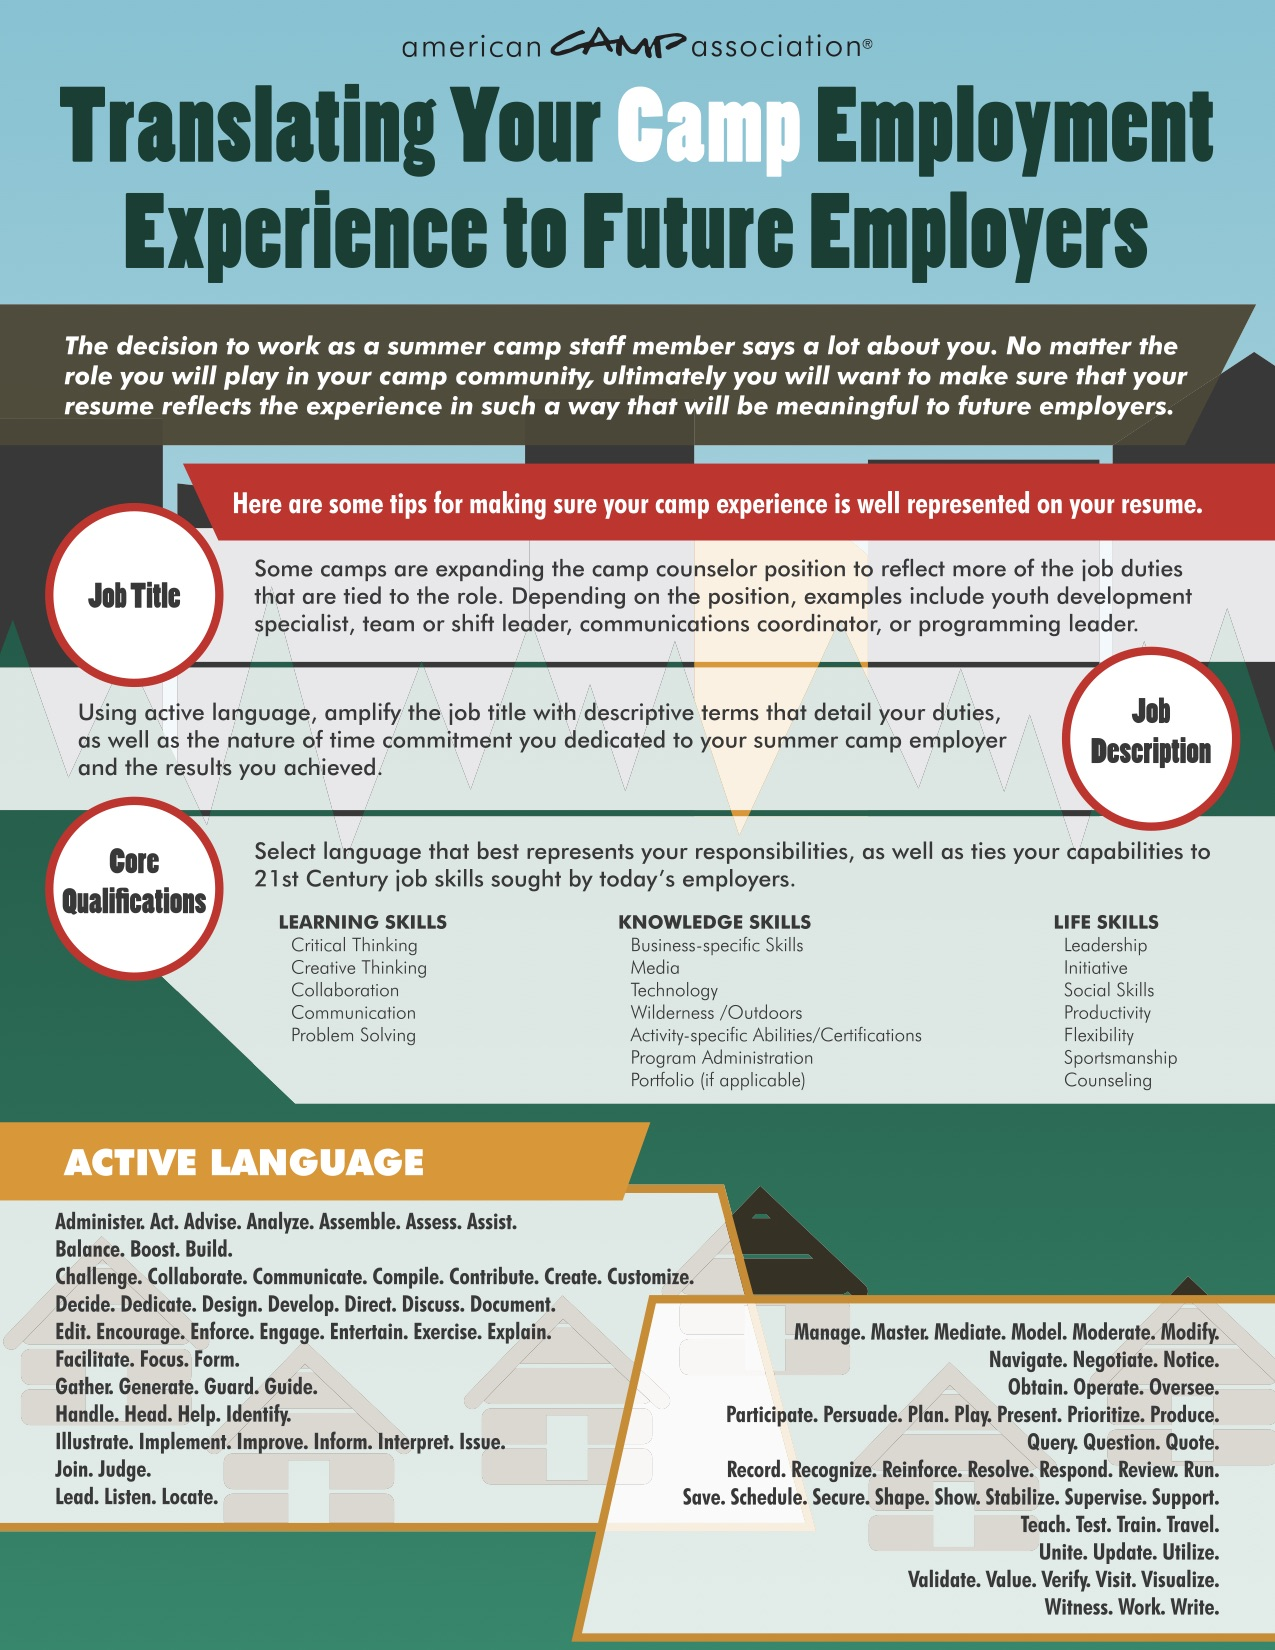 Staff Fair PDF image - Translating Your Camp Employment Experience to Future Employers